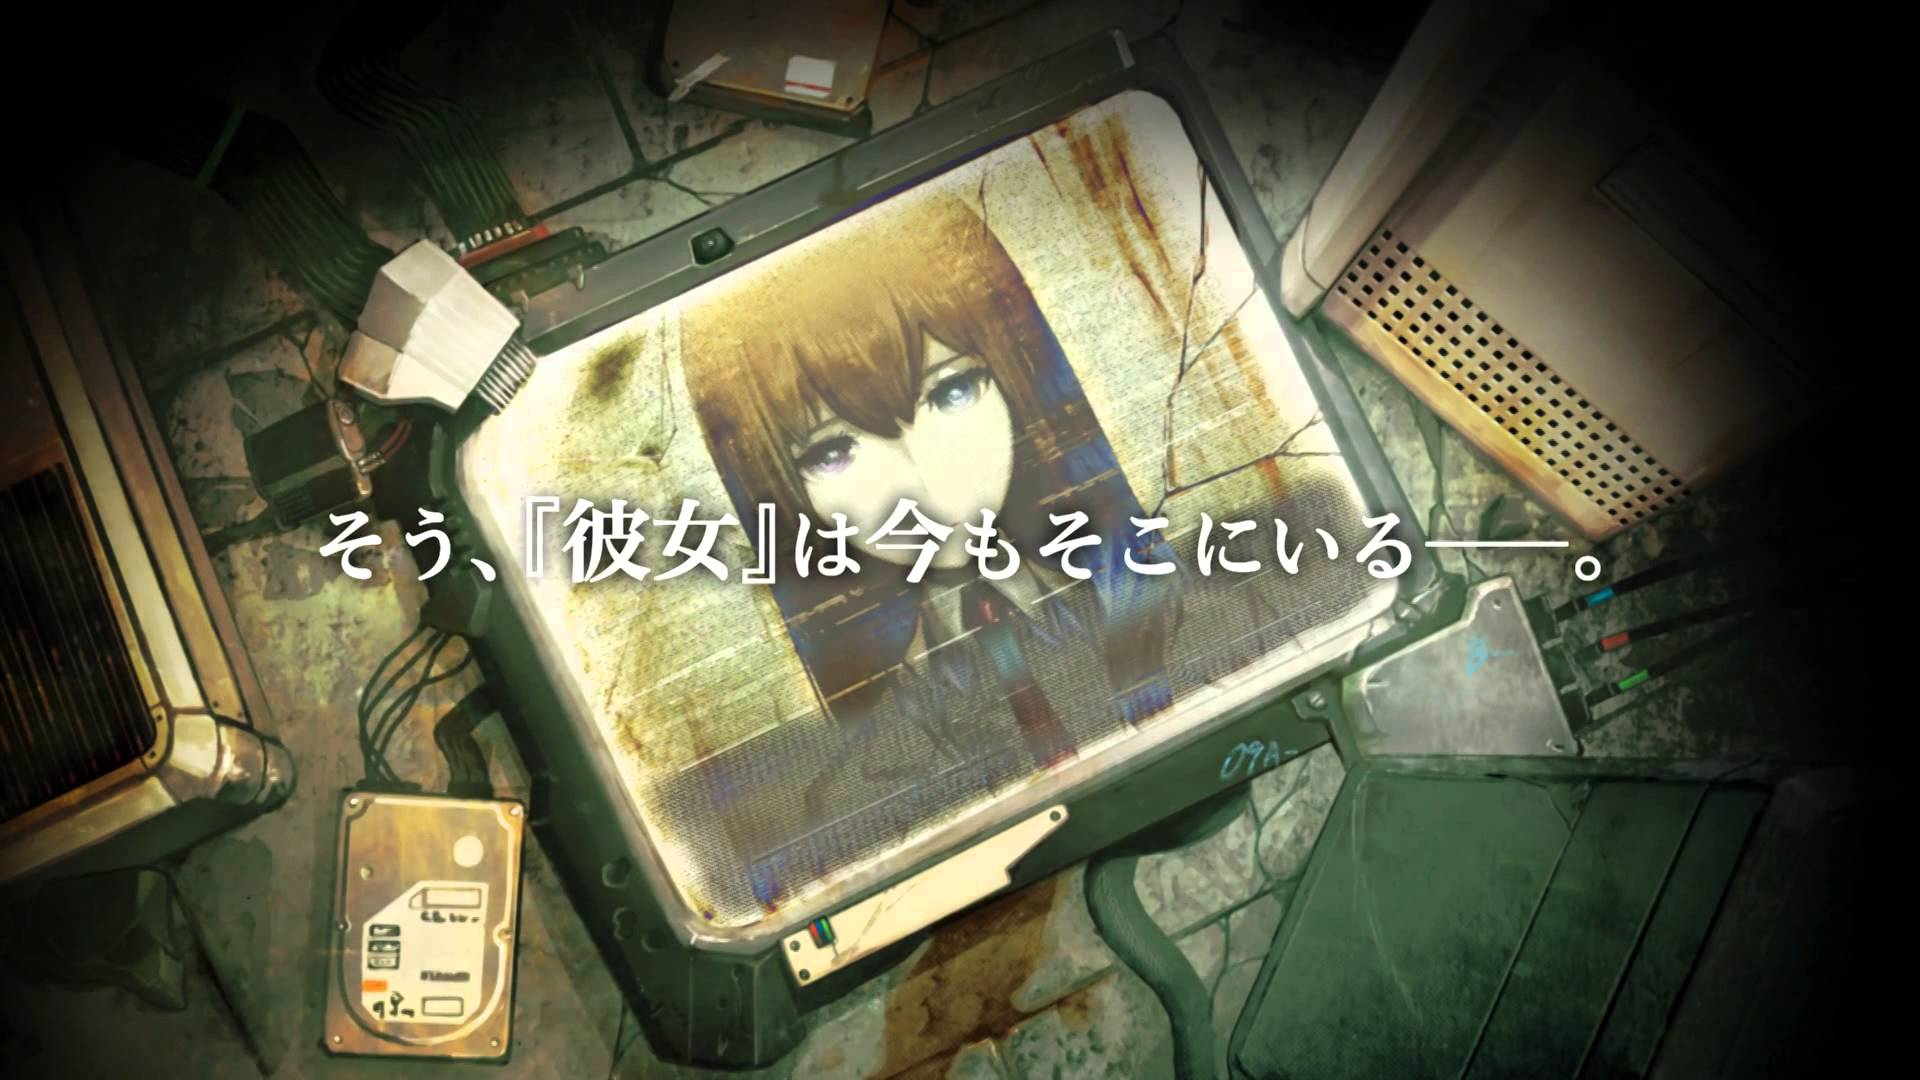 Steins Gate Wallpaper Steins;gate Sequel to